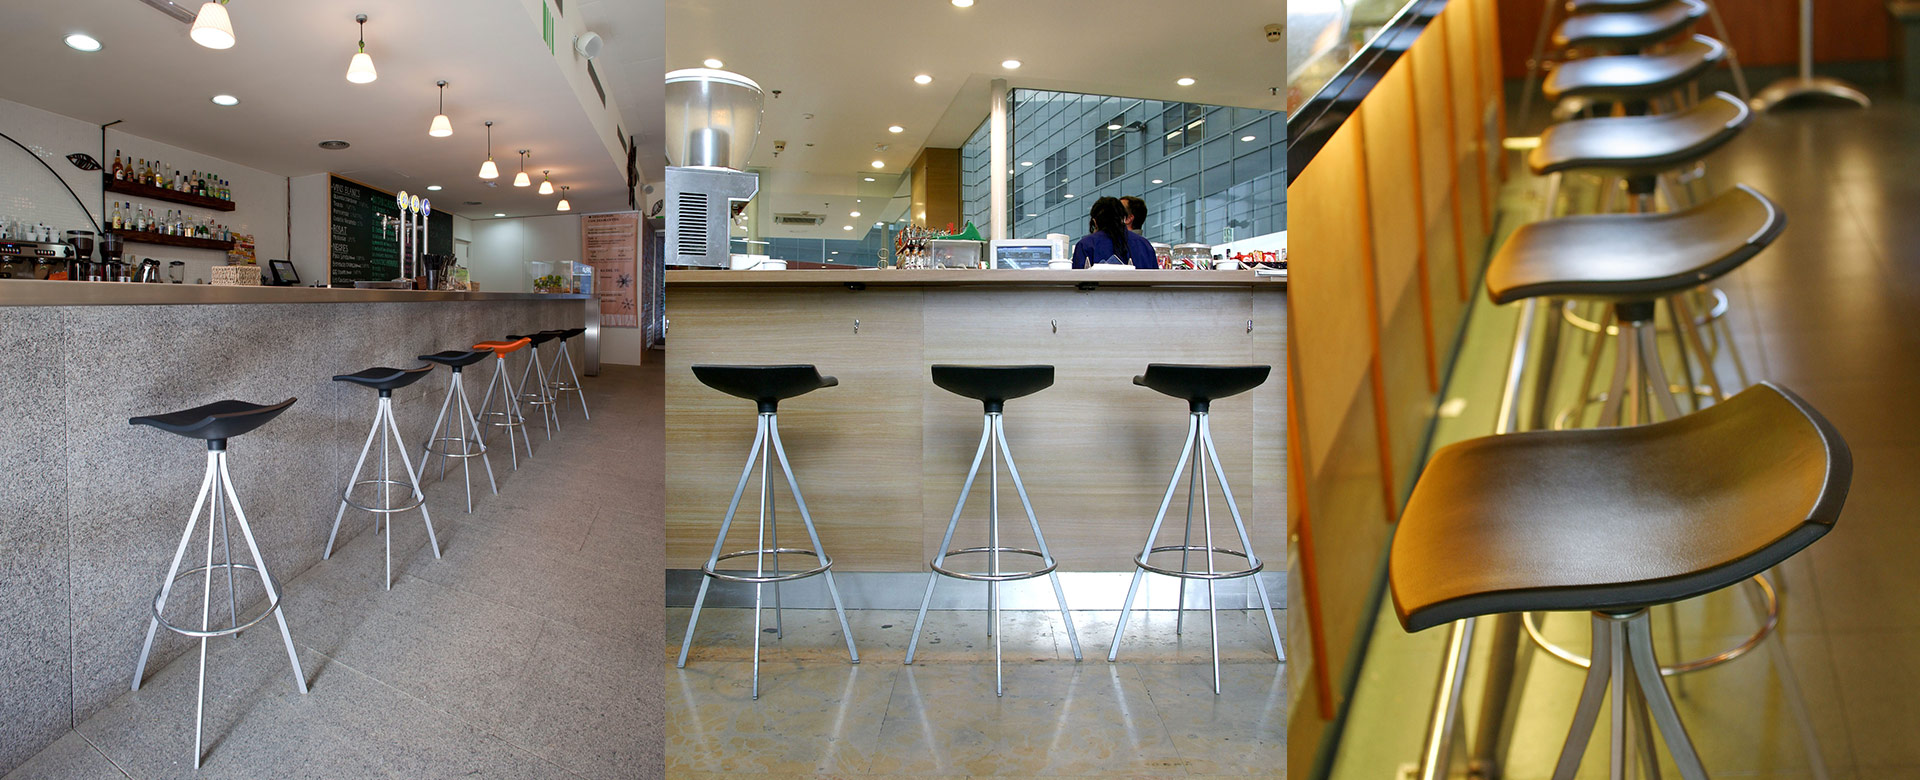 GINLET Stools